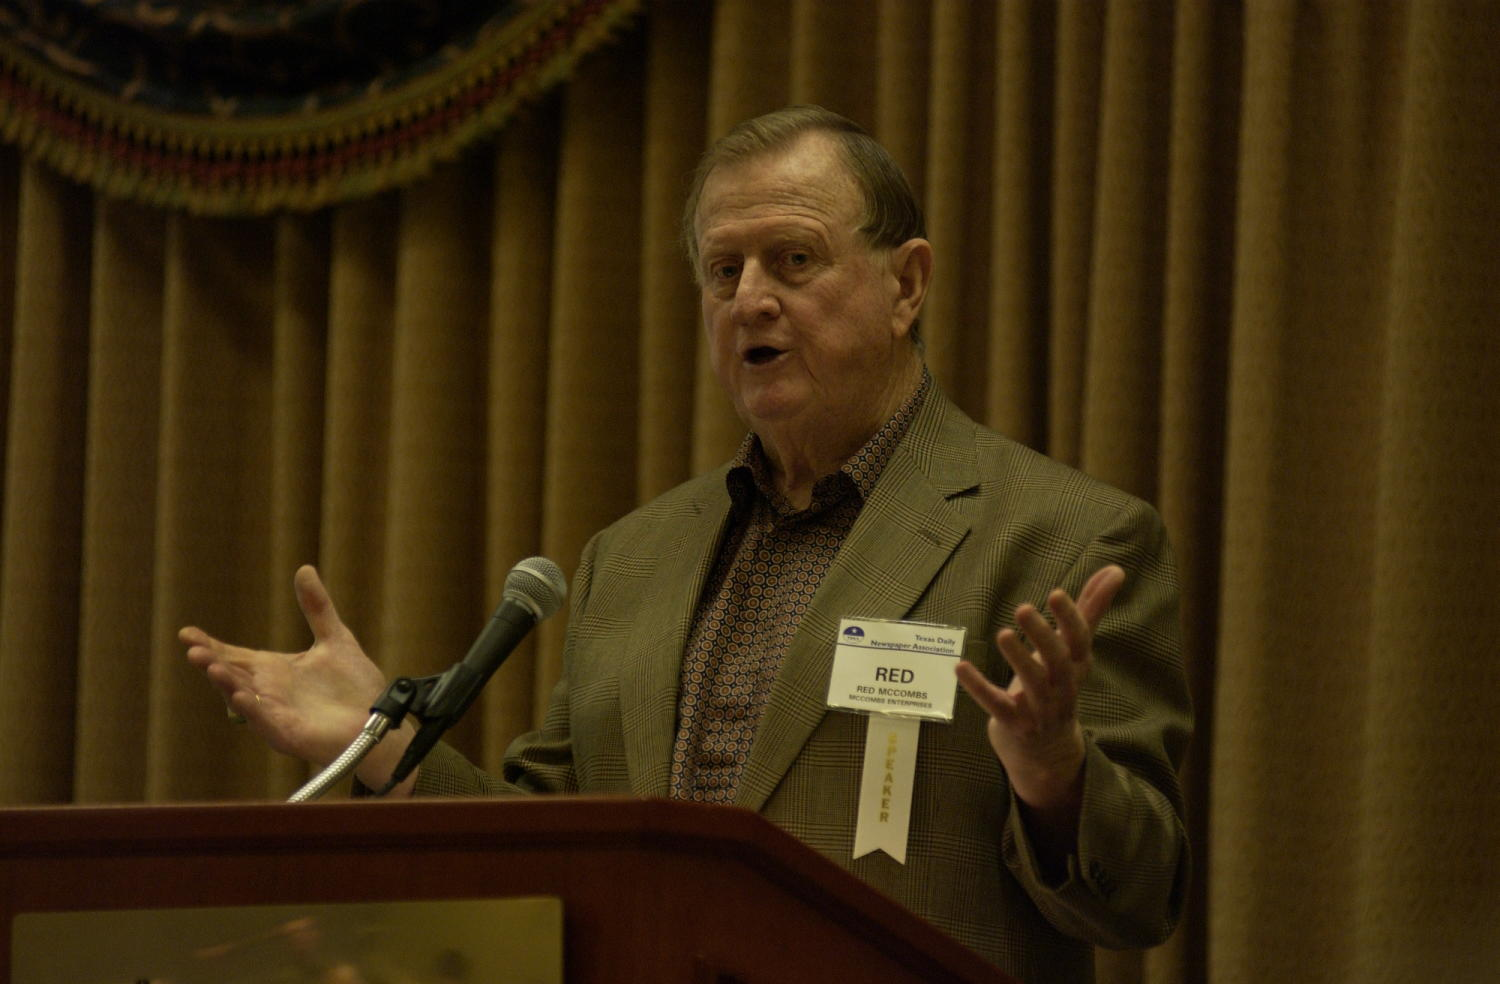 """[Billy Joe """"Red"""" McCombs guest speaking at TDNA conference, 3], Photograph of Billy Joe """"Red"""" McCombs of McCombs Enterprises, guest speaking at the 2004 Texas Daily News Association (TDNA) annual conference held in Corpus Christi. McCombs is seen standing at a podium and speaking into the microphone as he addresses the guests of the conference.,"""